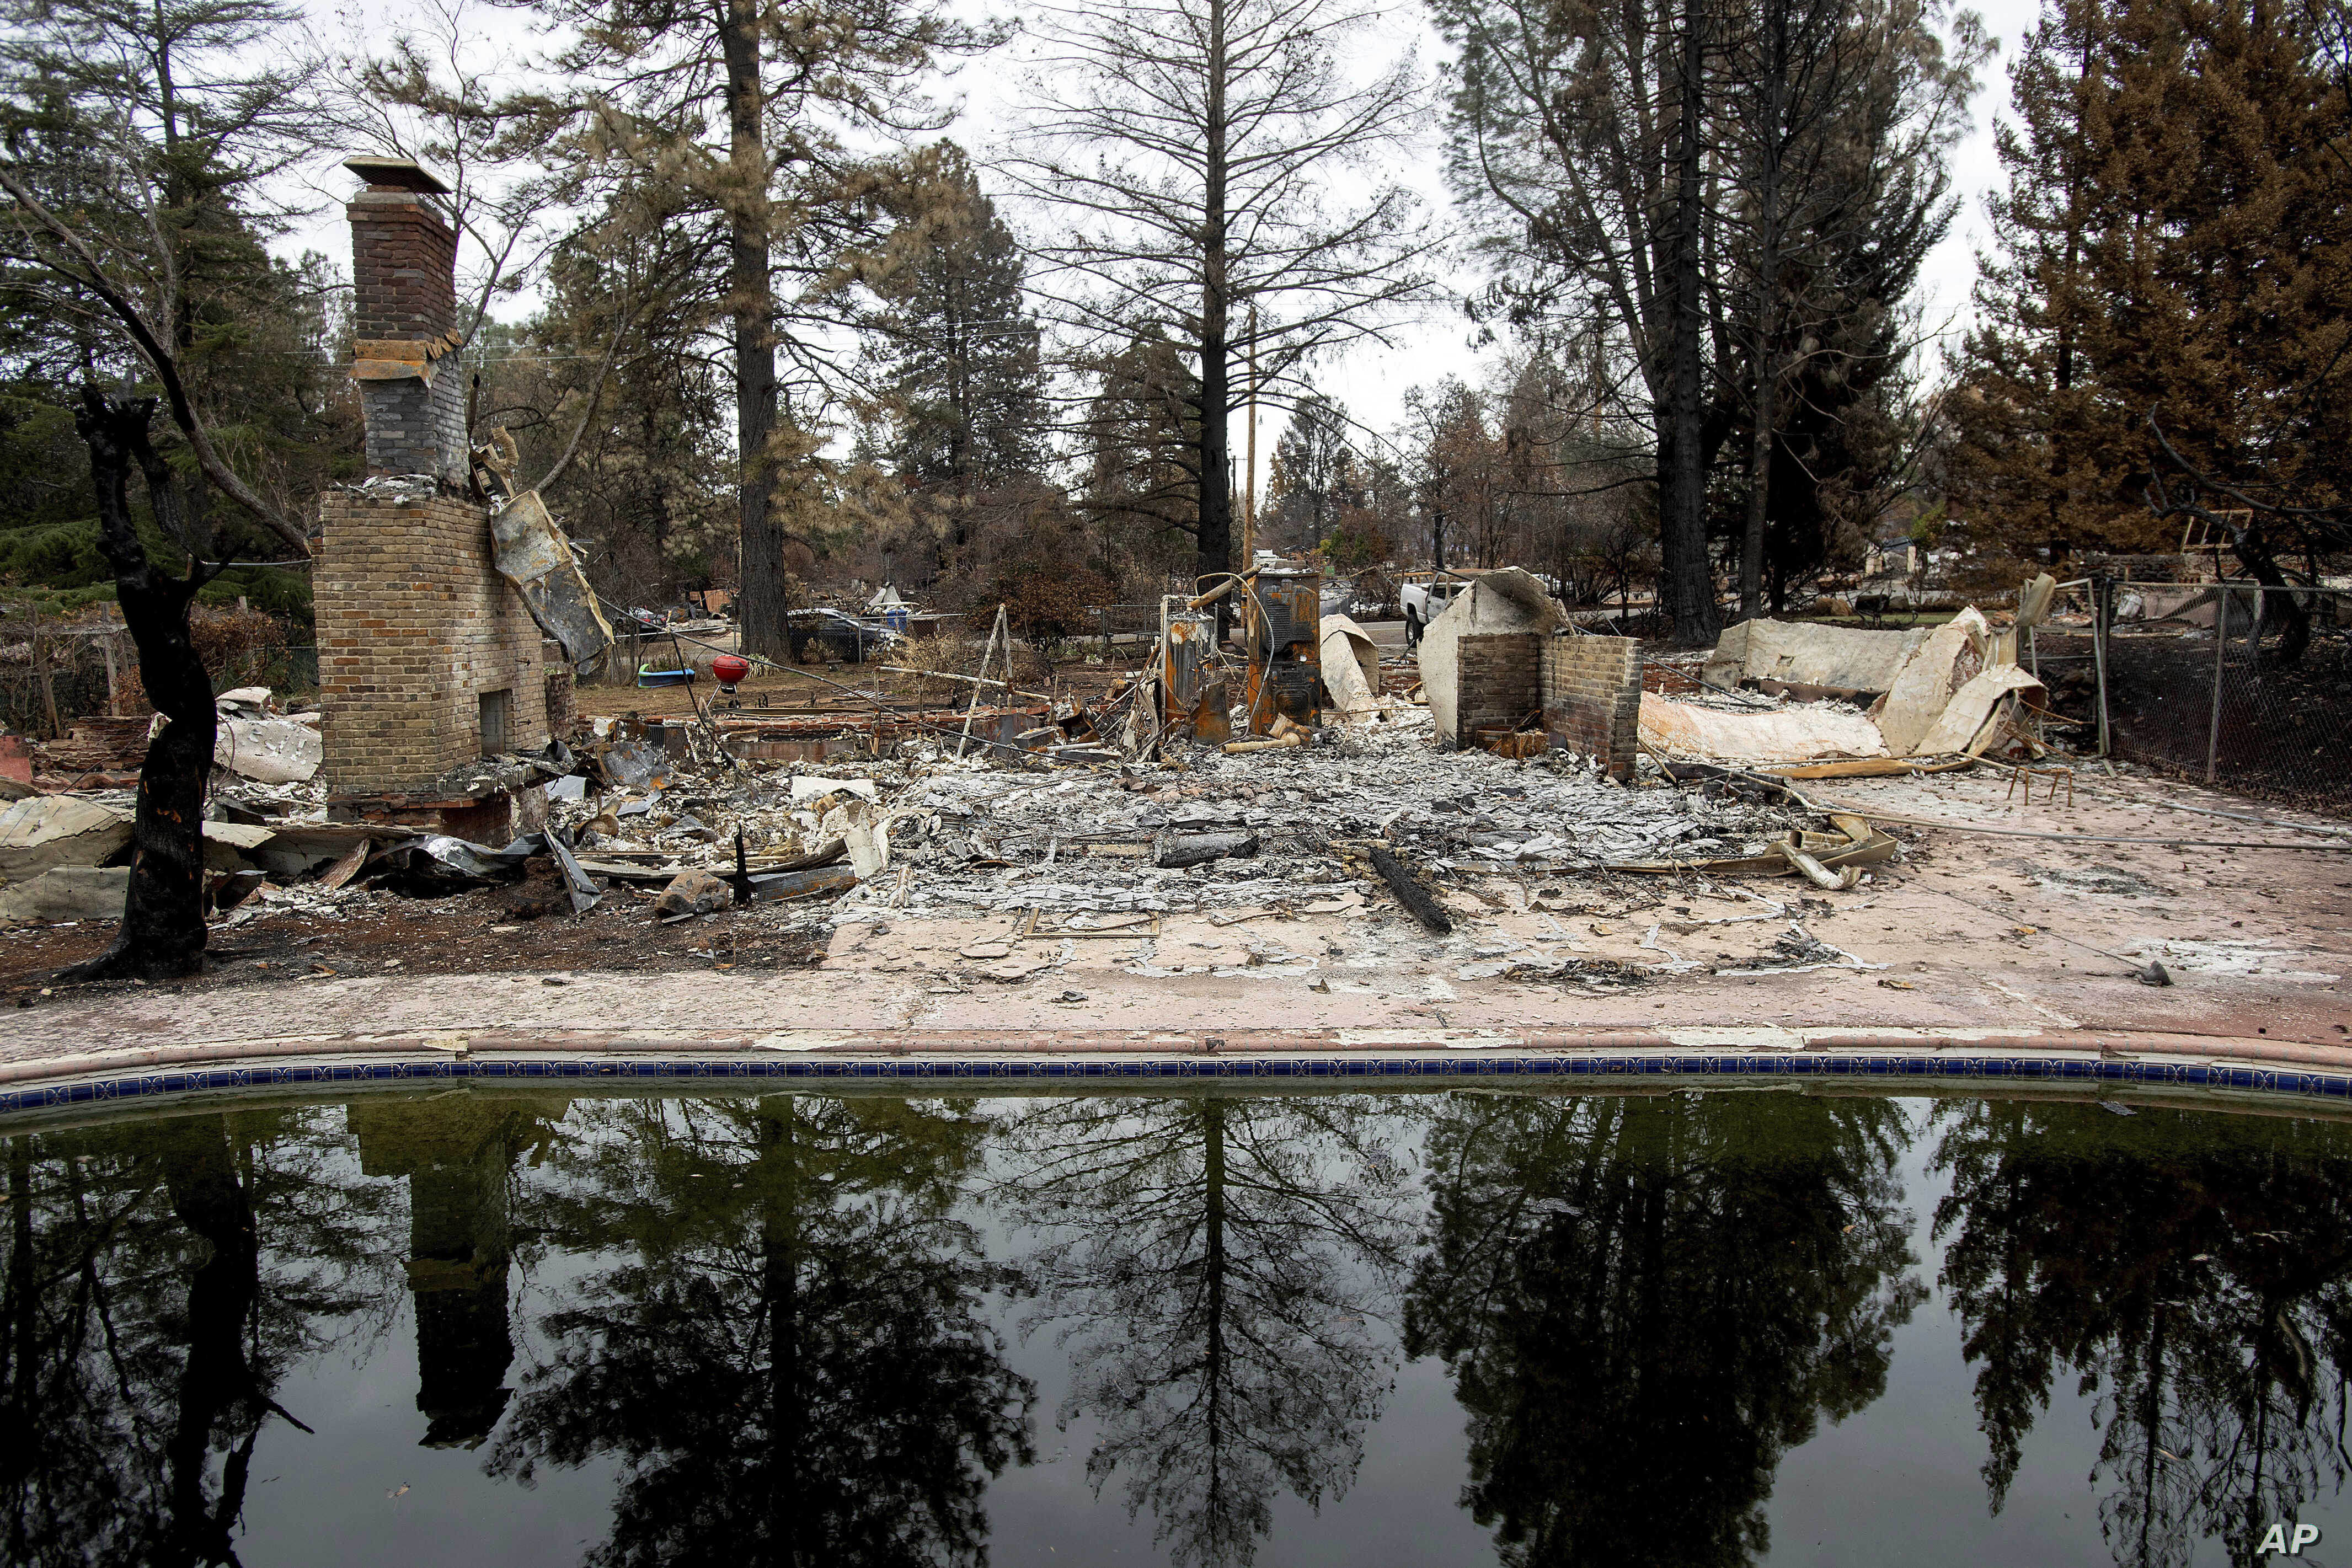 FILE - In this Dec. 3, 2018, file photo, trees reflect in a swimming pool outside Erica Hail's Paradise, Calif., home, which burned during the Camp Fire.